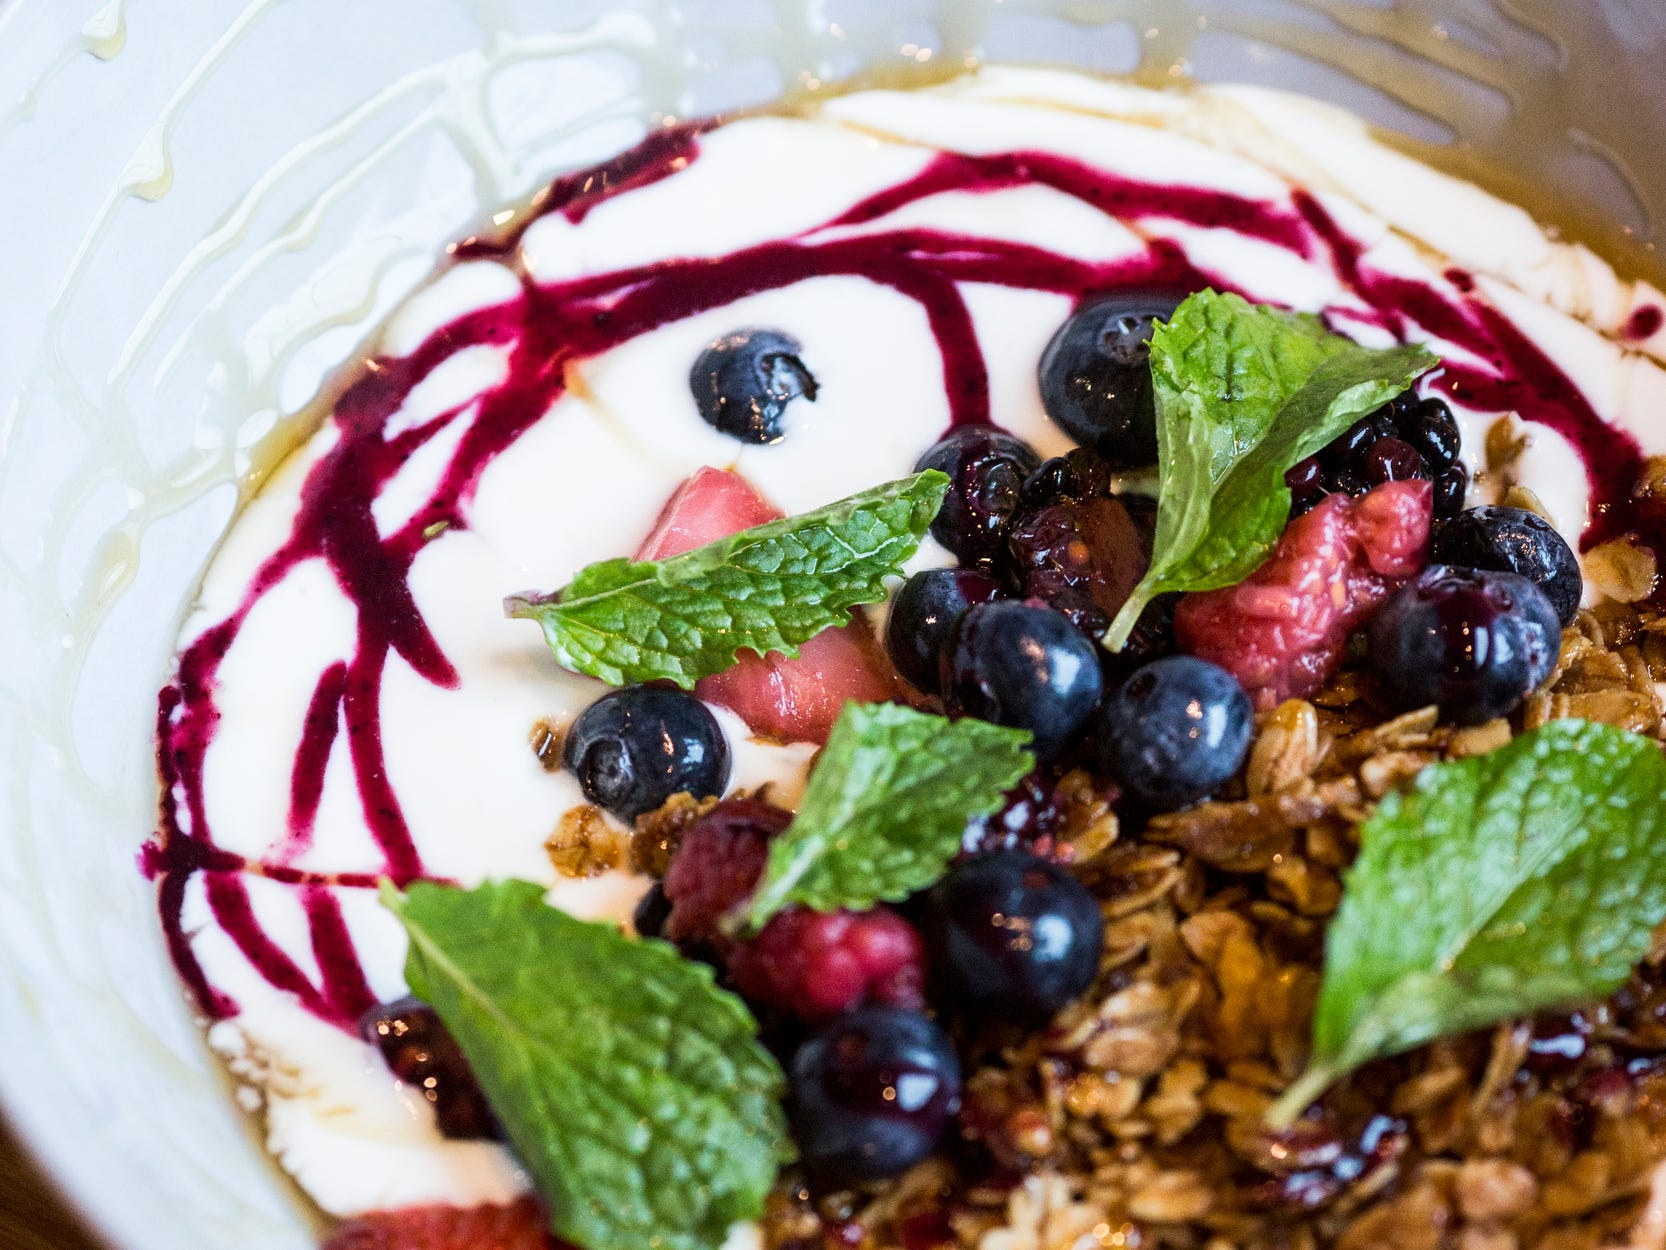 February 10, 2019 - Yogurt featuring granola and seasonal fruit is available during Sunday brunch at PO Press Public House & Provisions in Collierville. PO Press Public House & Provisions is located at 148 N Main St. in Collierville.